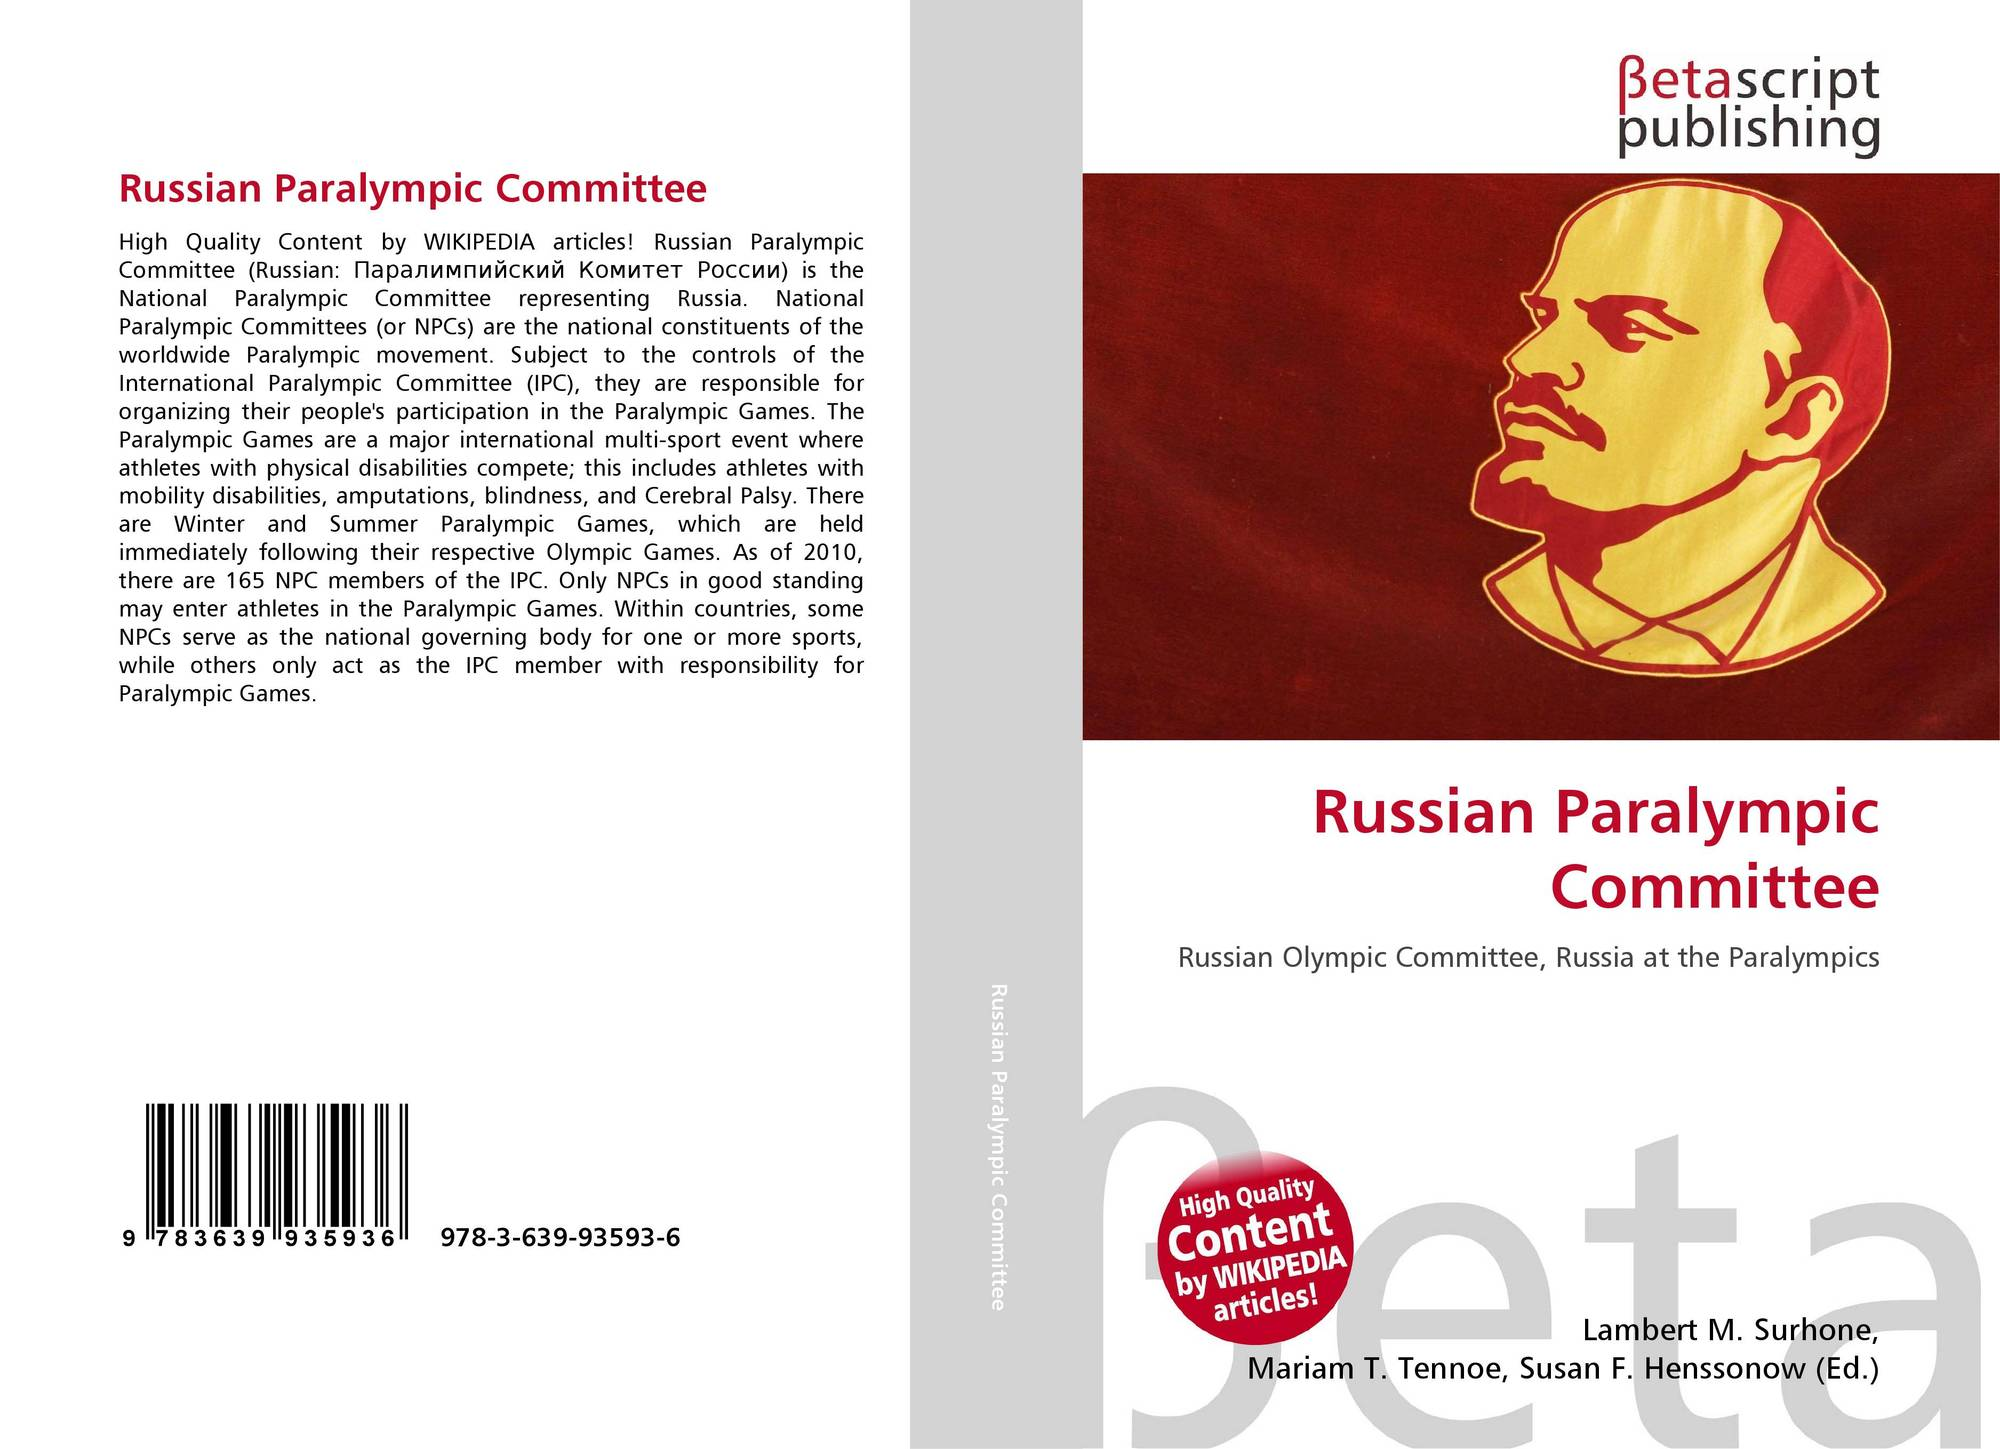 an introduction to the fall of the communist regime in the soviet union being more than a political  While good in theory, it created conflicts that lasted for decades first conceived in the soviet union, there was an expectation that communism would be a revolutionary tide that would sweep across all of europe after wwii, the soviet union still dominated with communist ideals in the countries of czechoslovakia, hungary and poland.